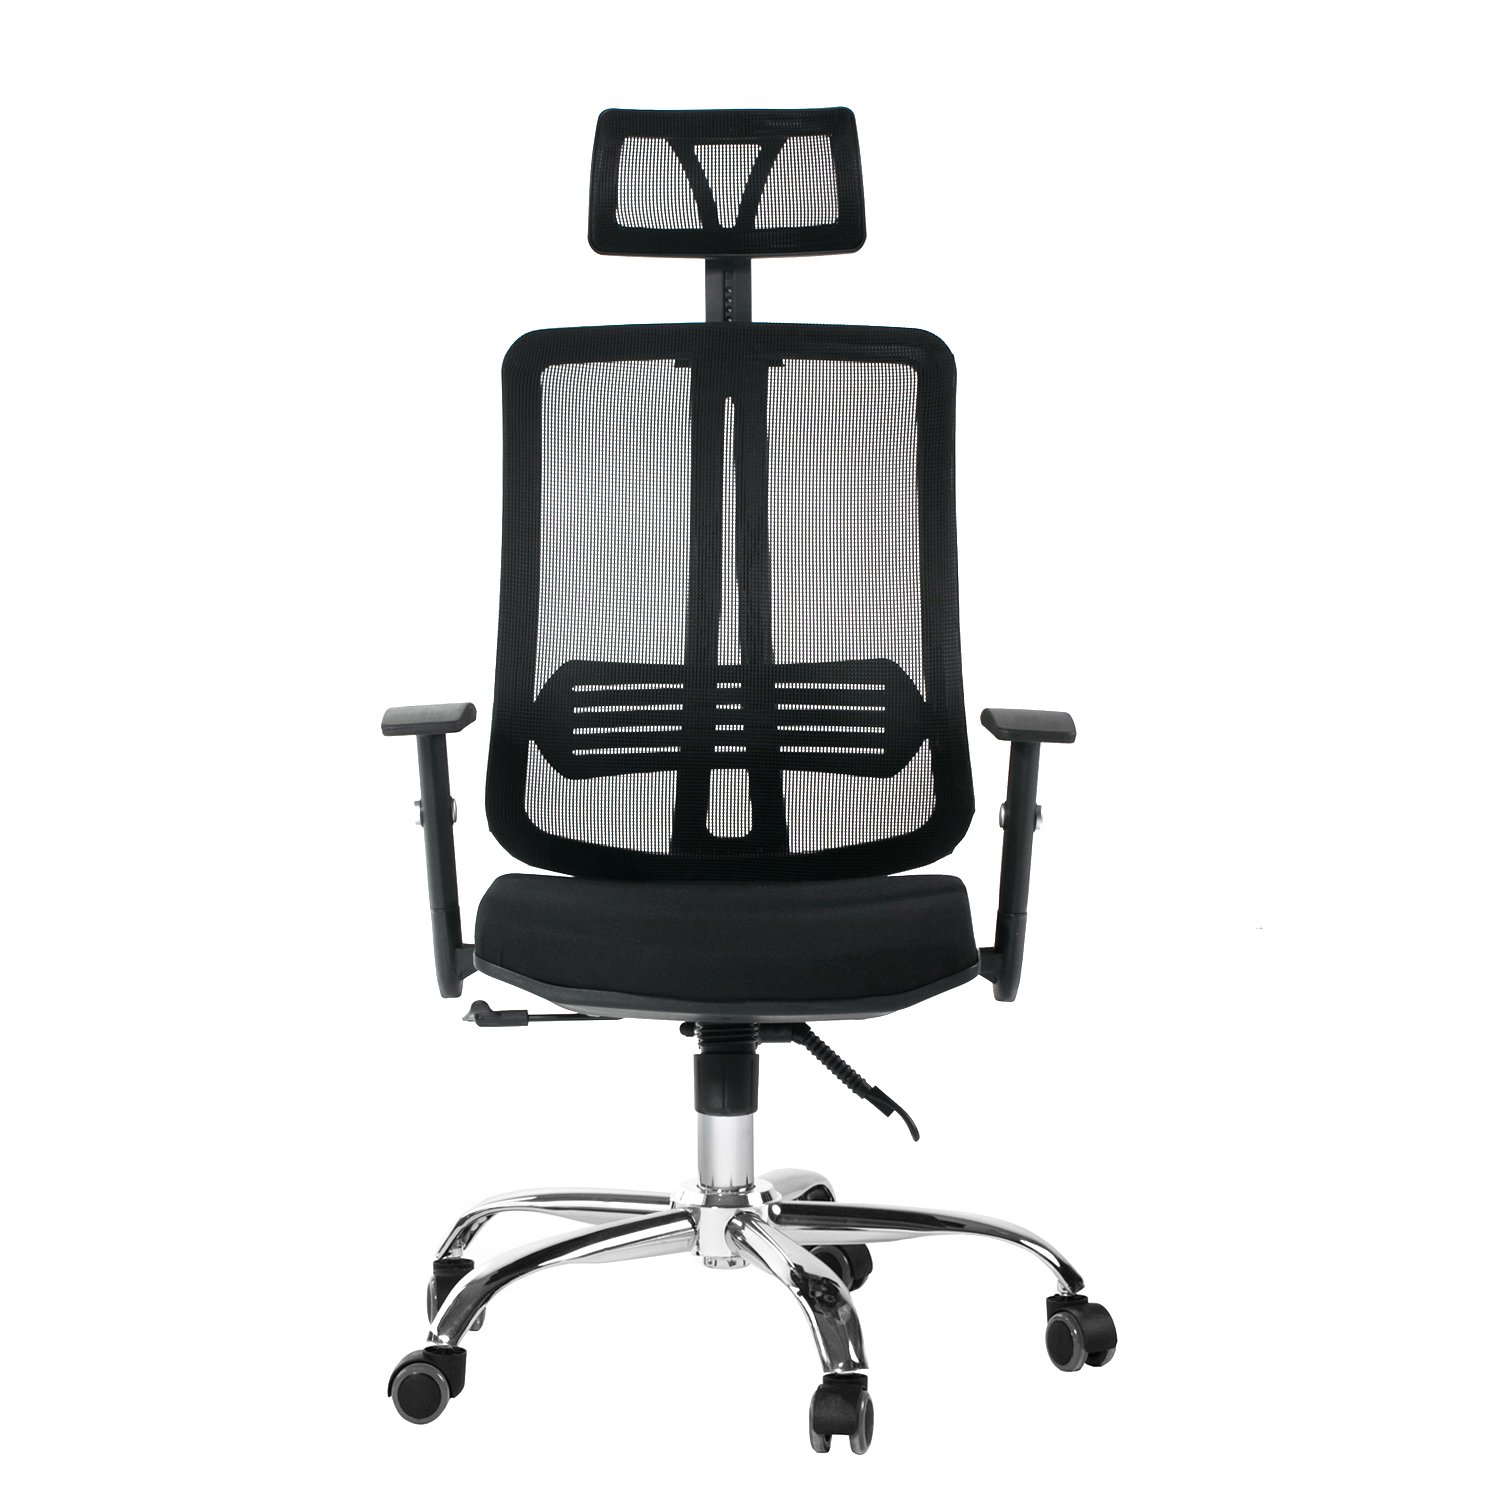 CCTRO Mesh Ergonomic Office Chair with Adjustable Headrest and Padded Flexible Armrest, 360 Degree Swivel Modern Computer Task Chairs for Home Office Conference Room